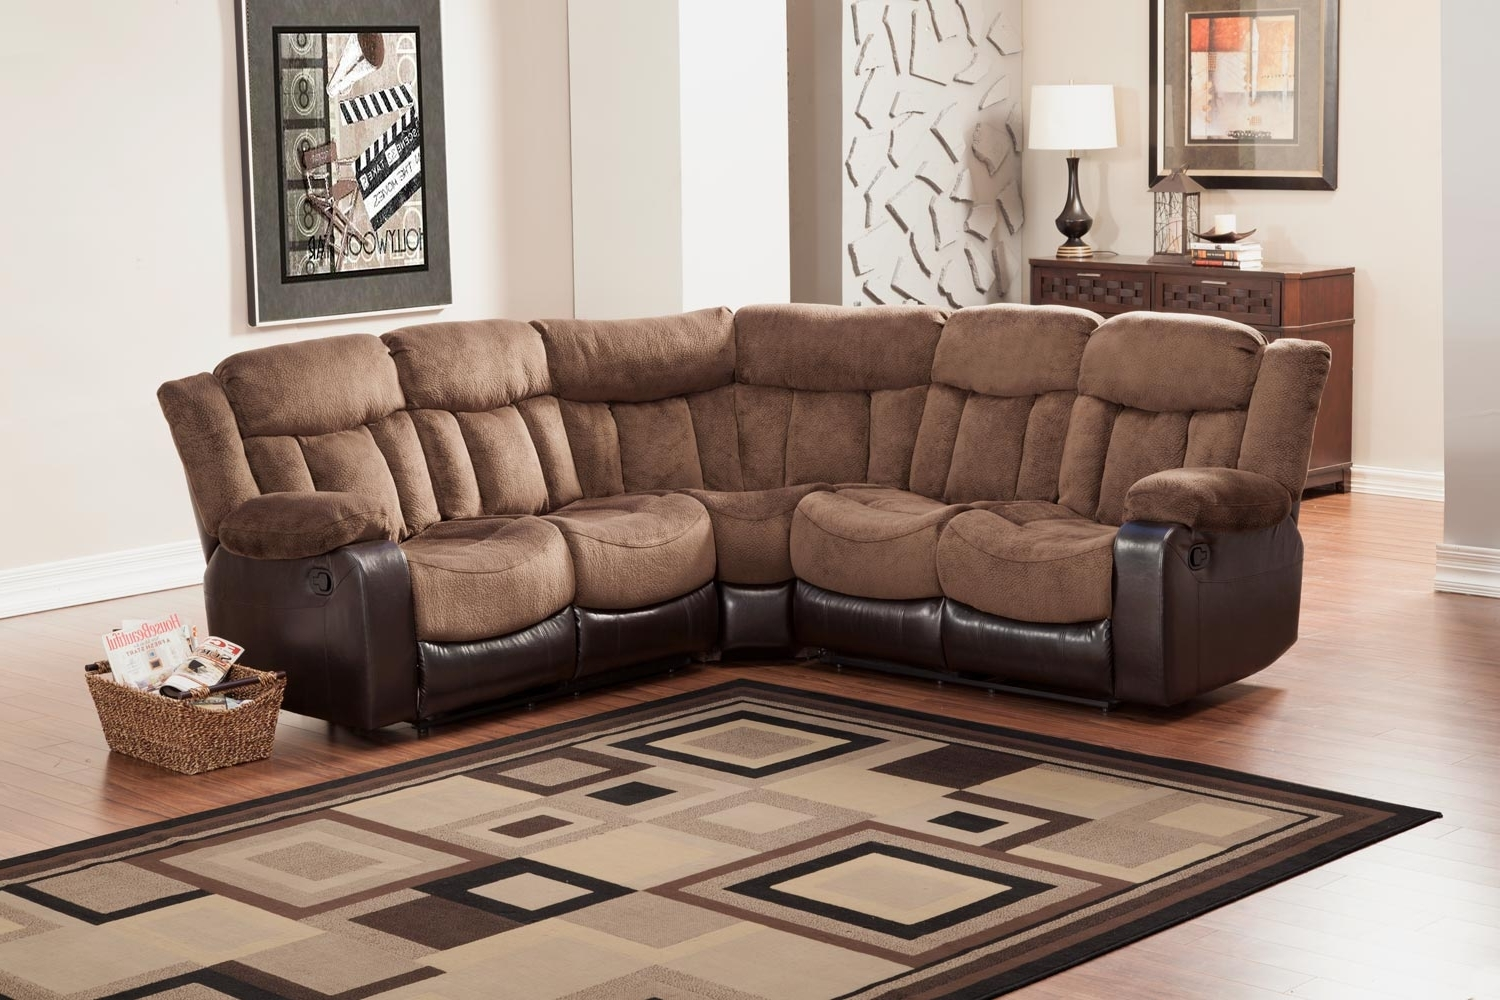 Newest Homelegance Vera Reclining Sectional Sofa – Chocolate – Textured With Regard To Sectional Sofas At Edmonton (View 12 of 20)